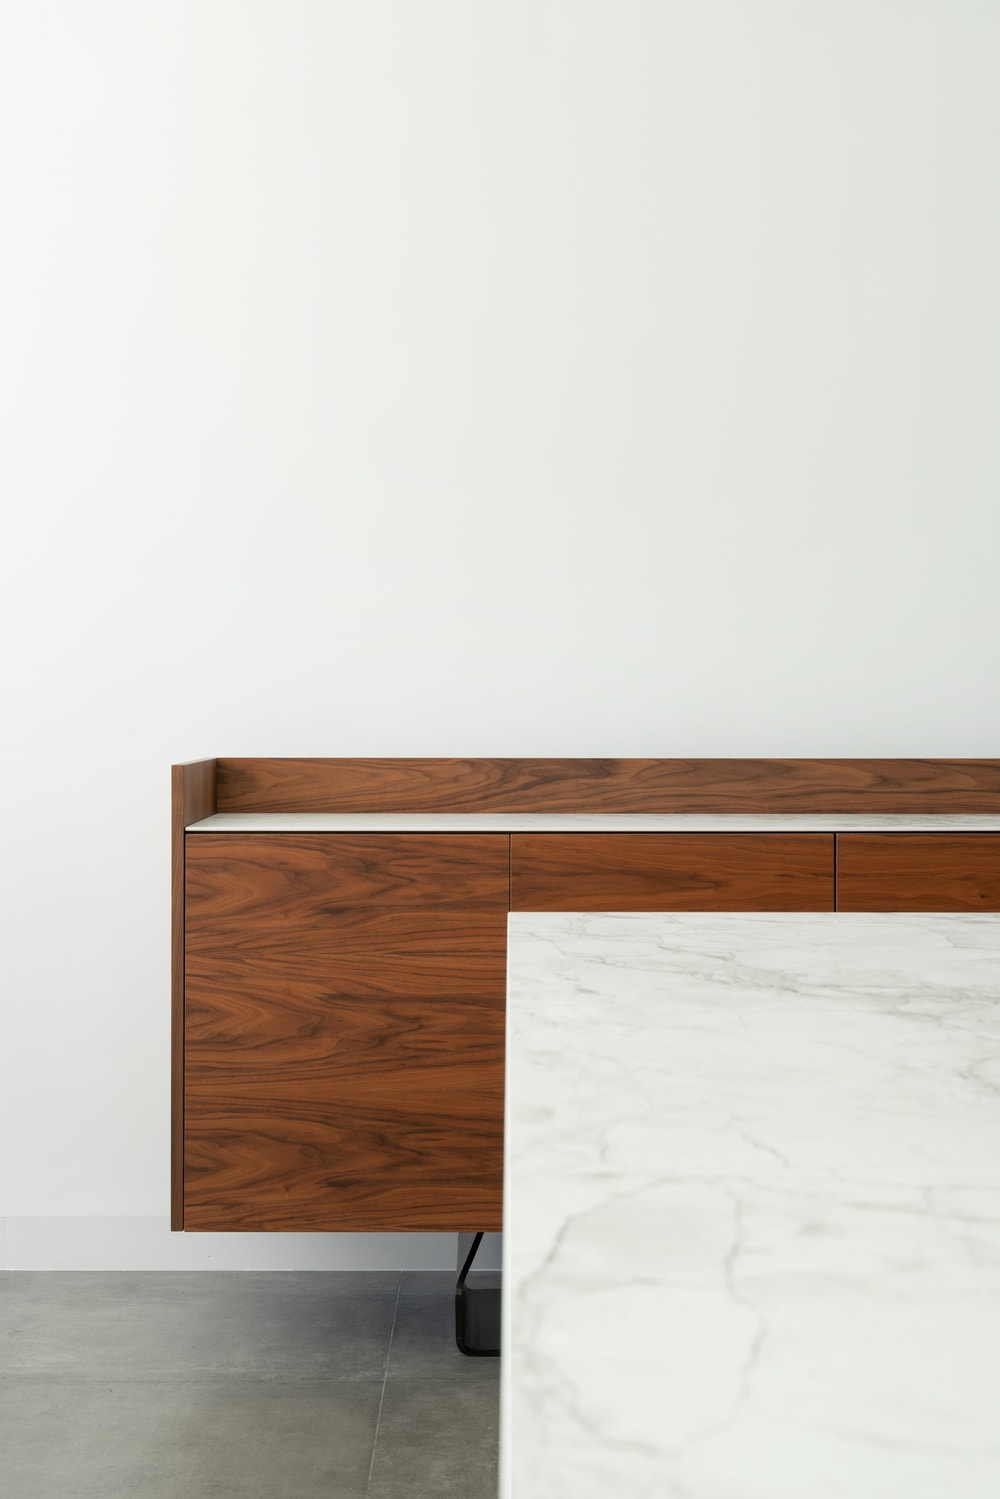 This is a close look at the white marble dining table with a wooden structure at the far end against the white wall.